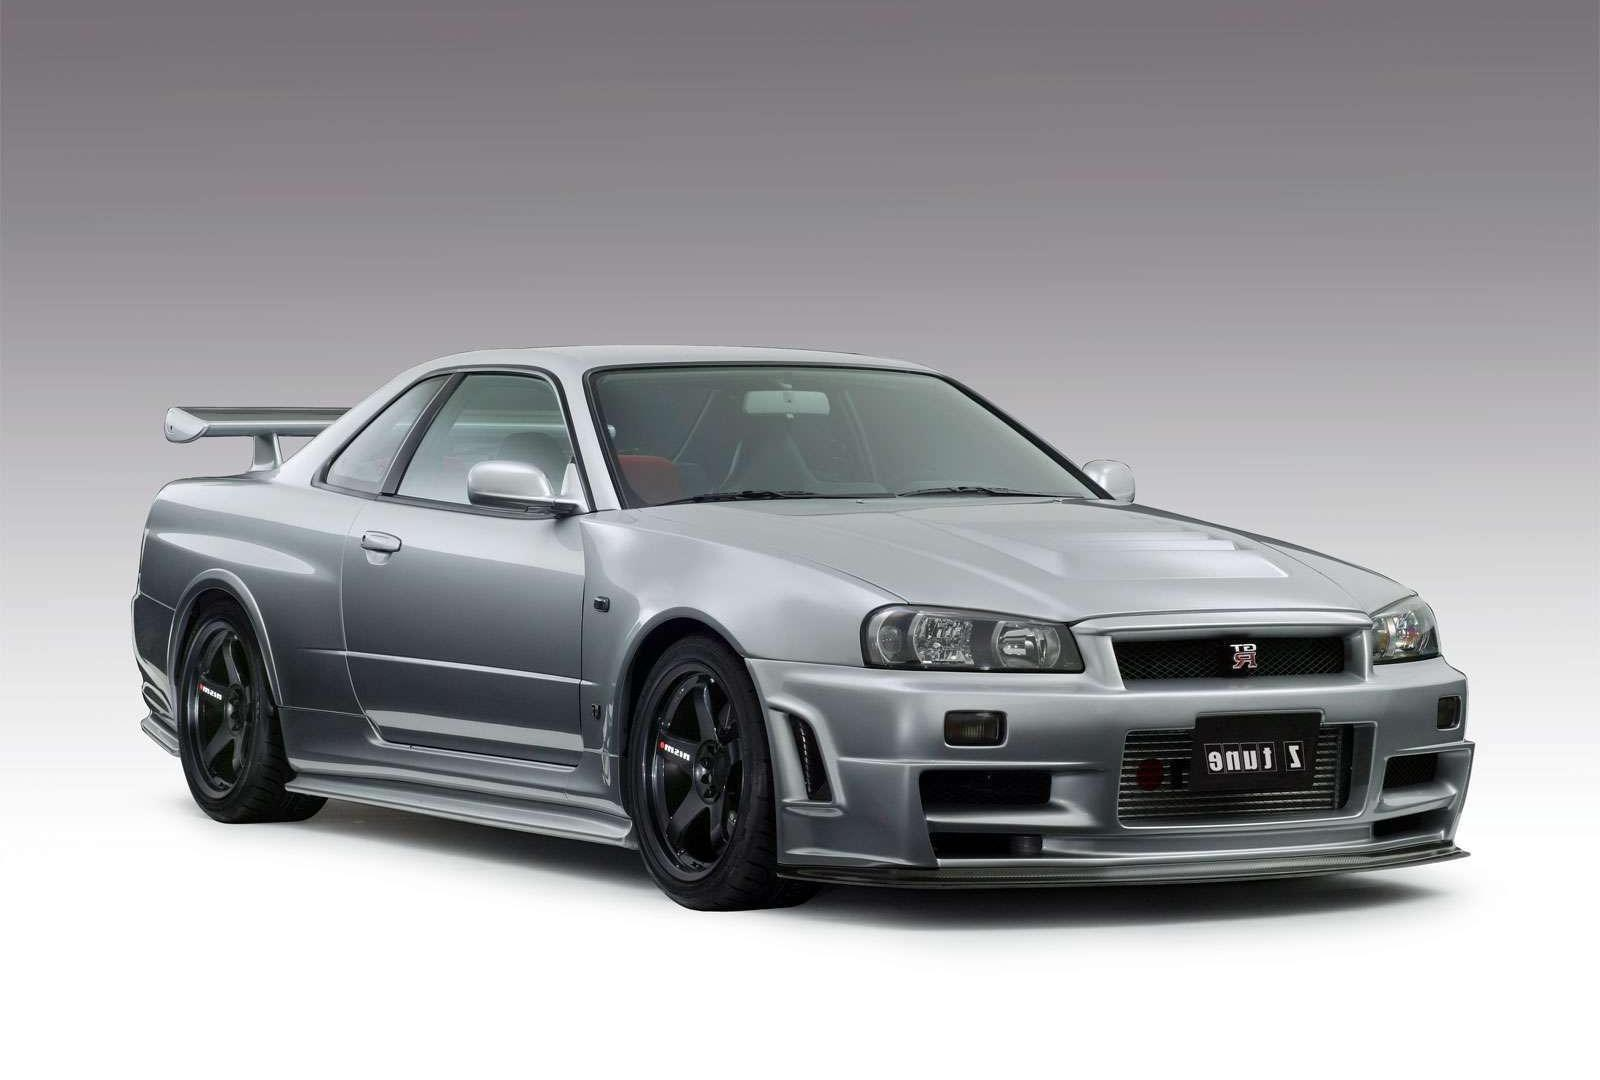 2014 nissan skyline r34 car review car wallpaper collections gallery view. Black Bedroom Furniture Sets. Home Design Ideas